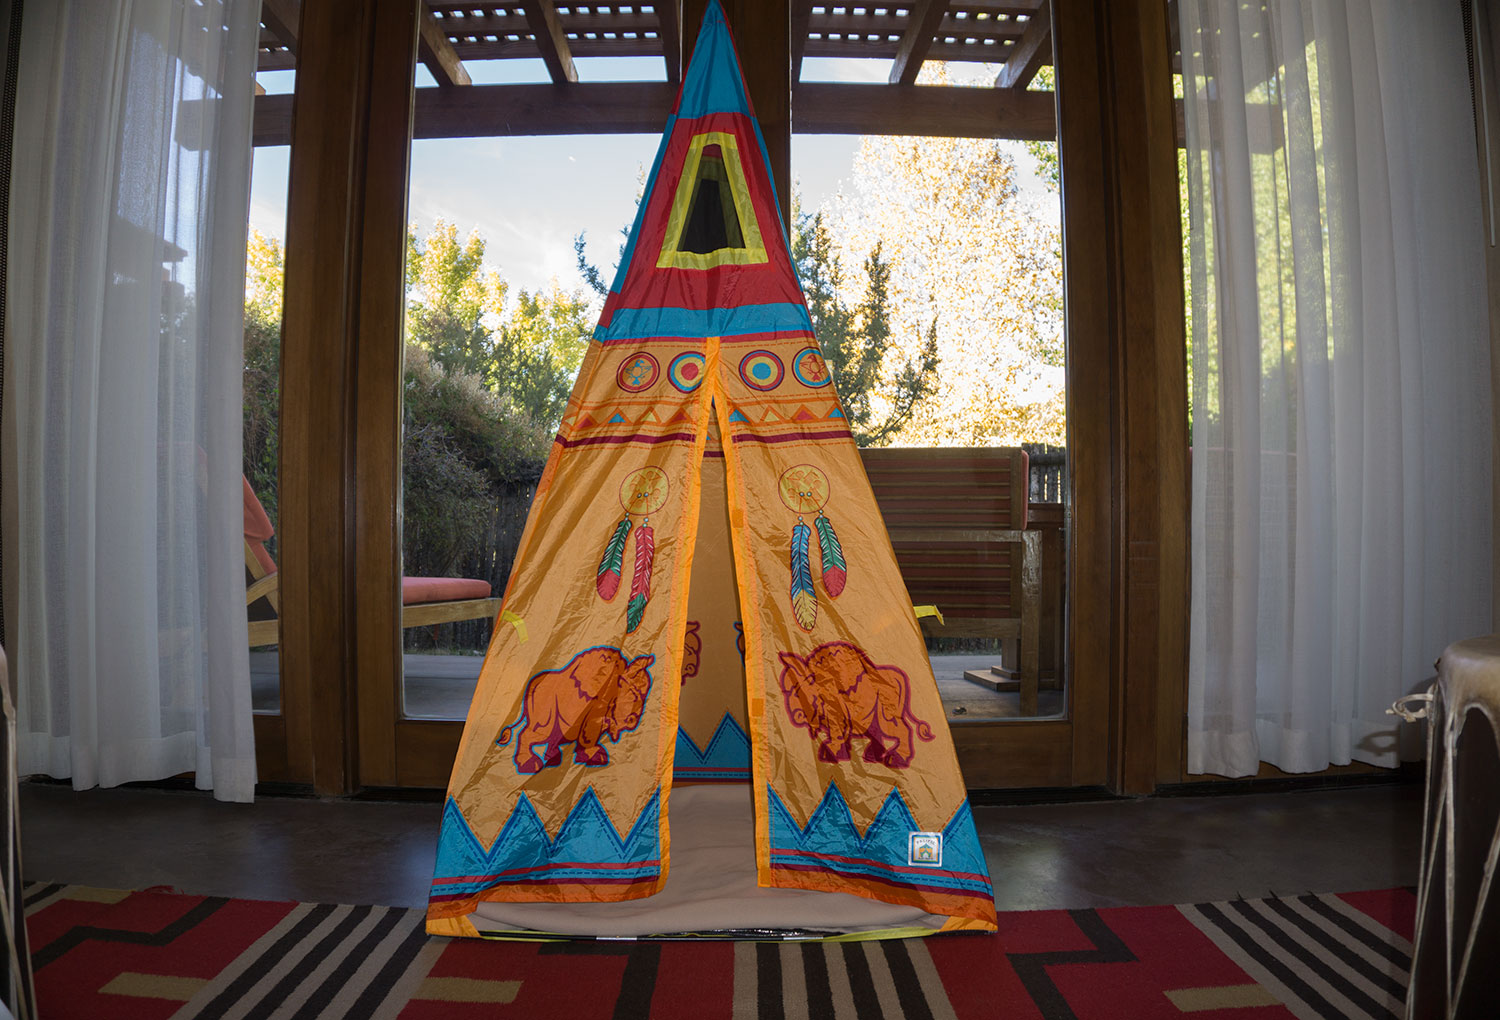 The Four Seasons Santa Fe welcomes children with a fun tent awaiting in the casita.